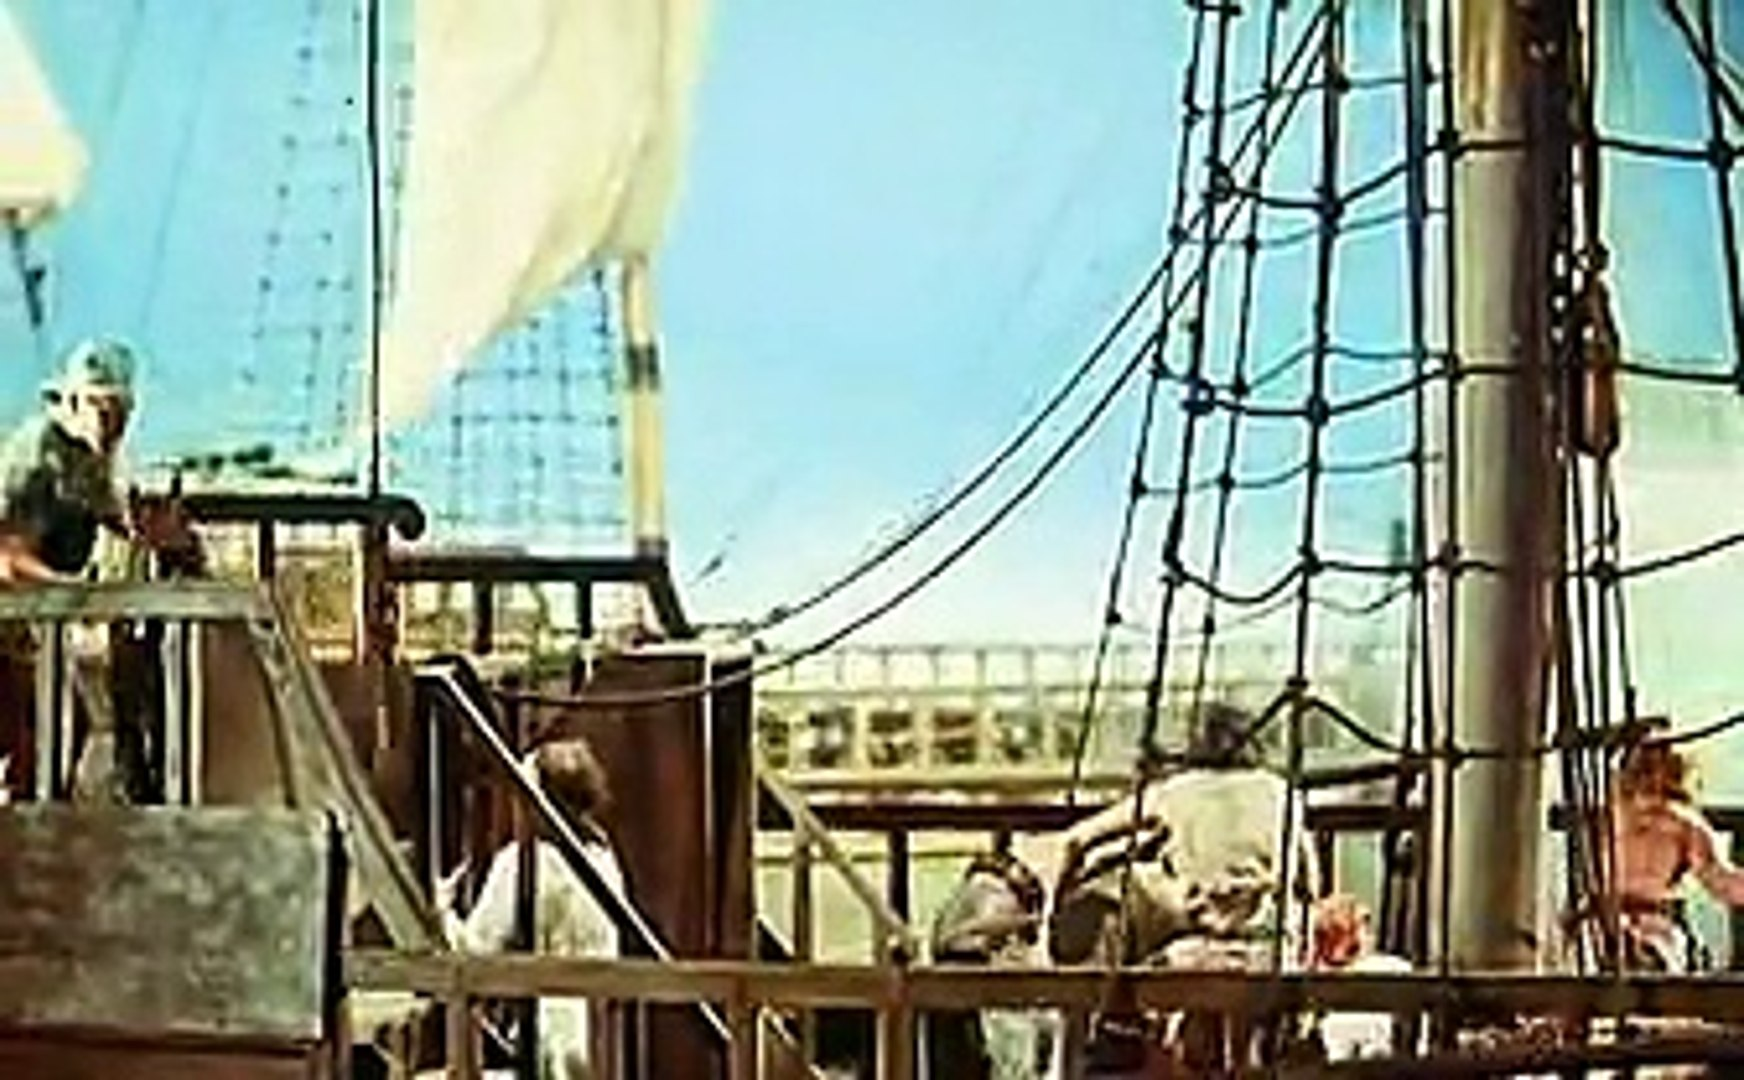 Pippi Calzelunghe Capitano Calzelunghe Chiede Aiuto Video Dailymotion